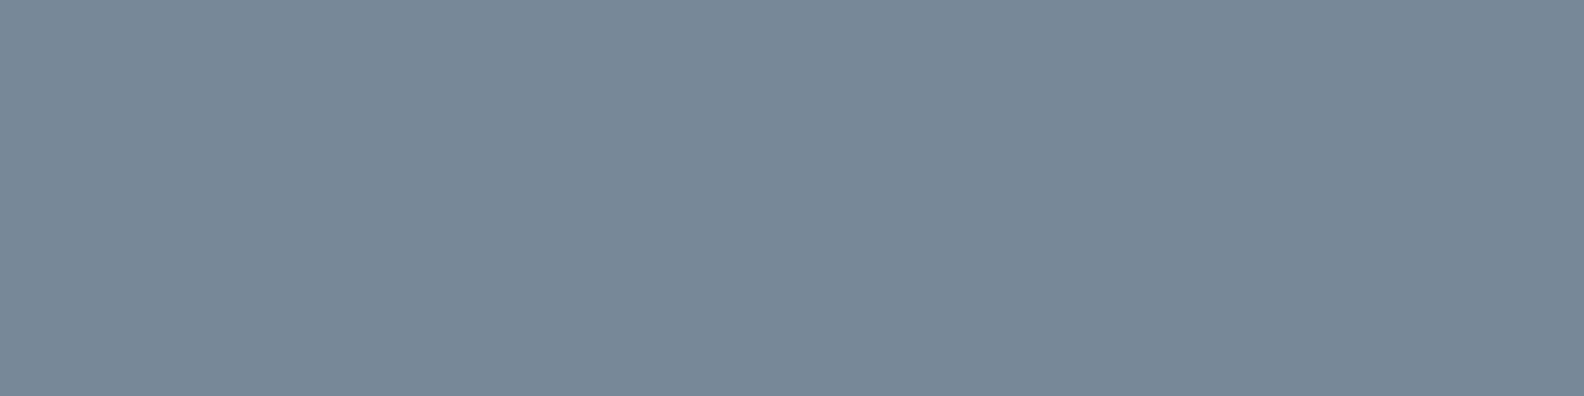 1584x396 Light Slate Gray Solid Color Background